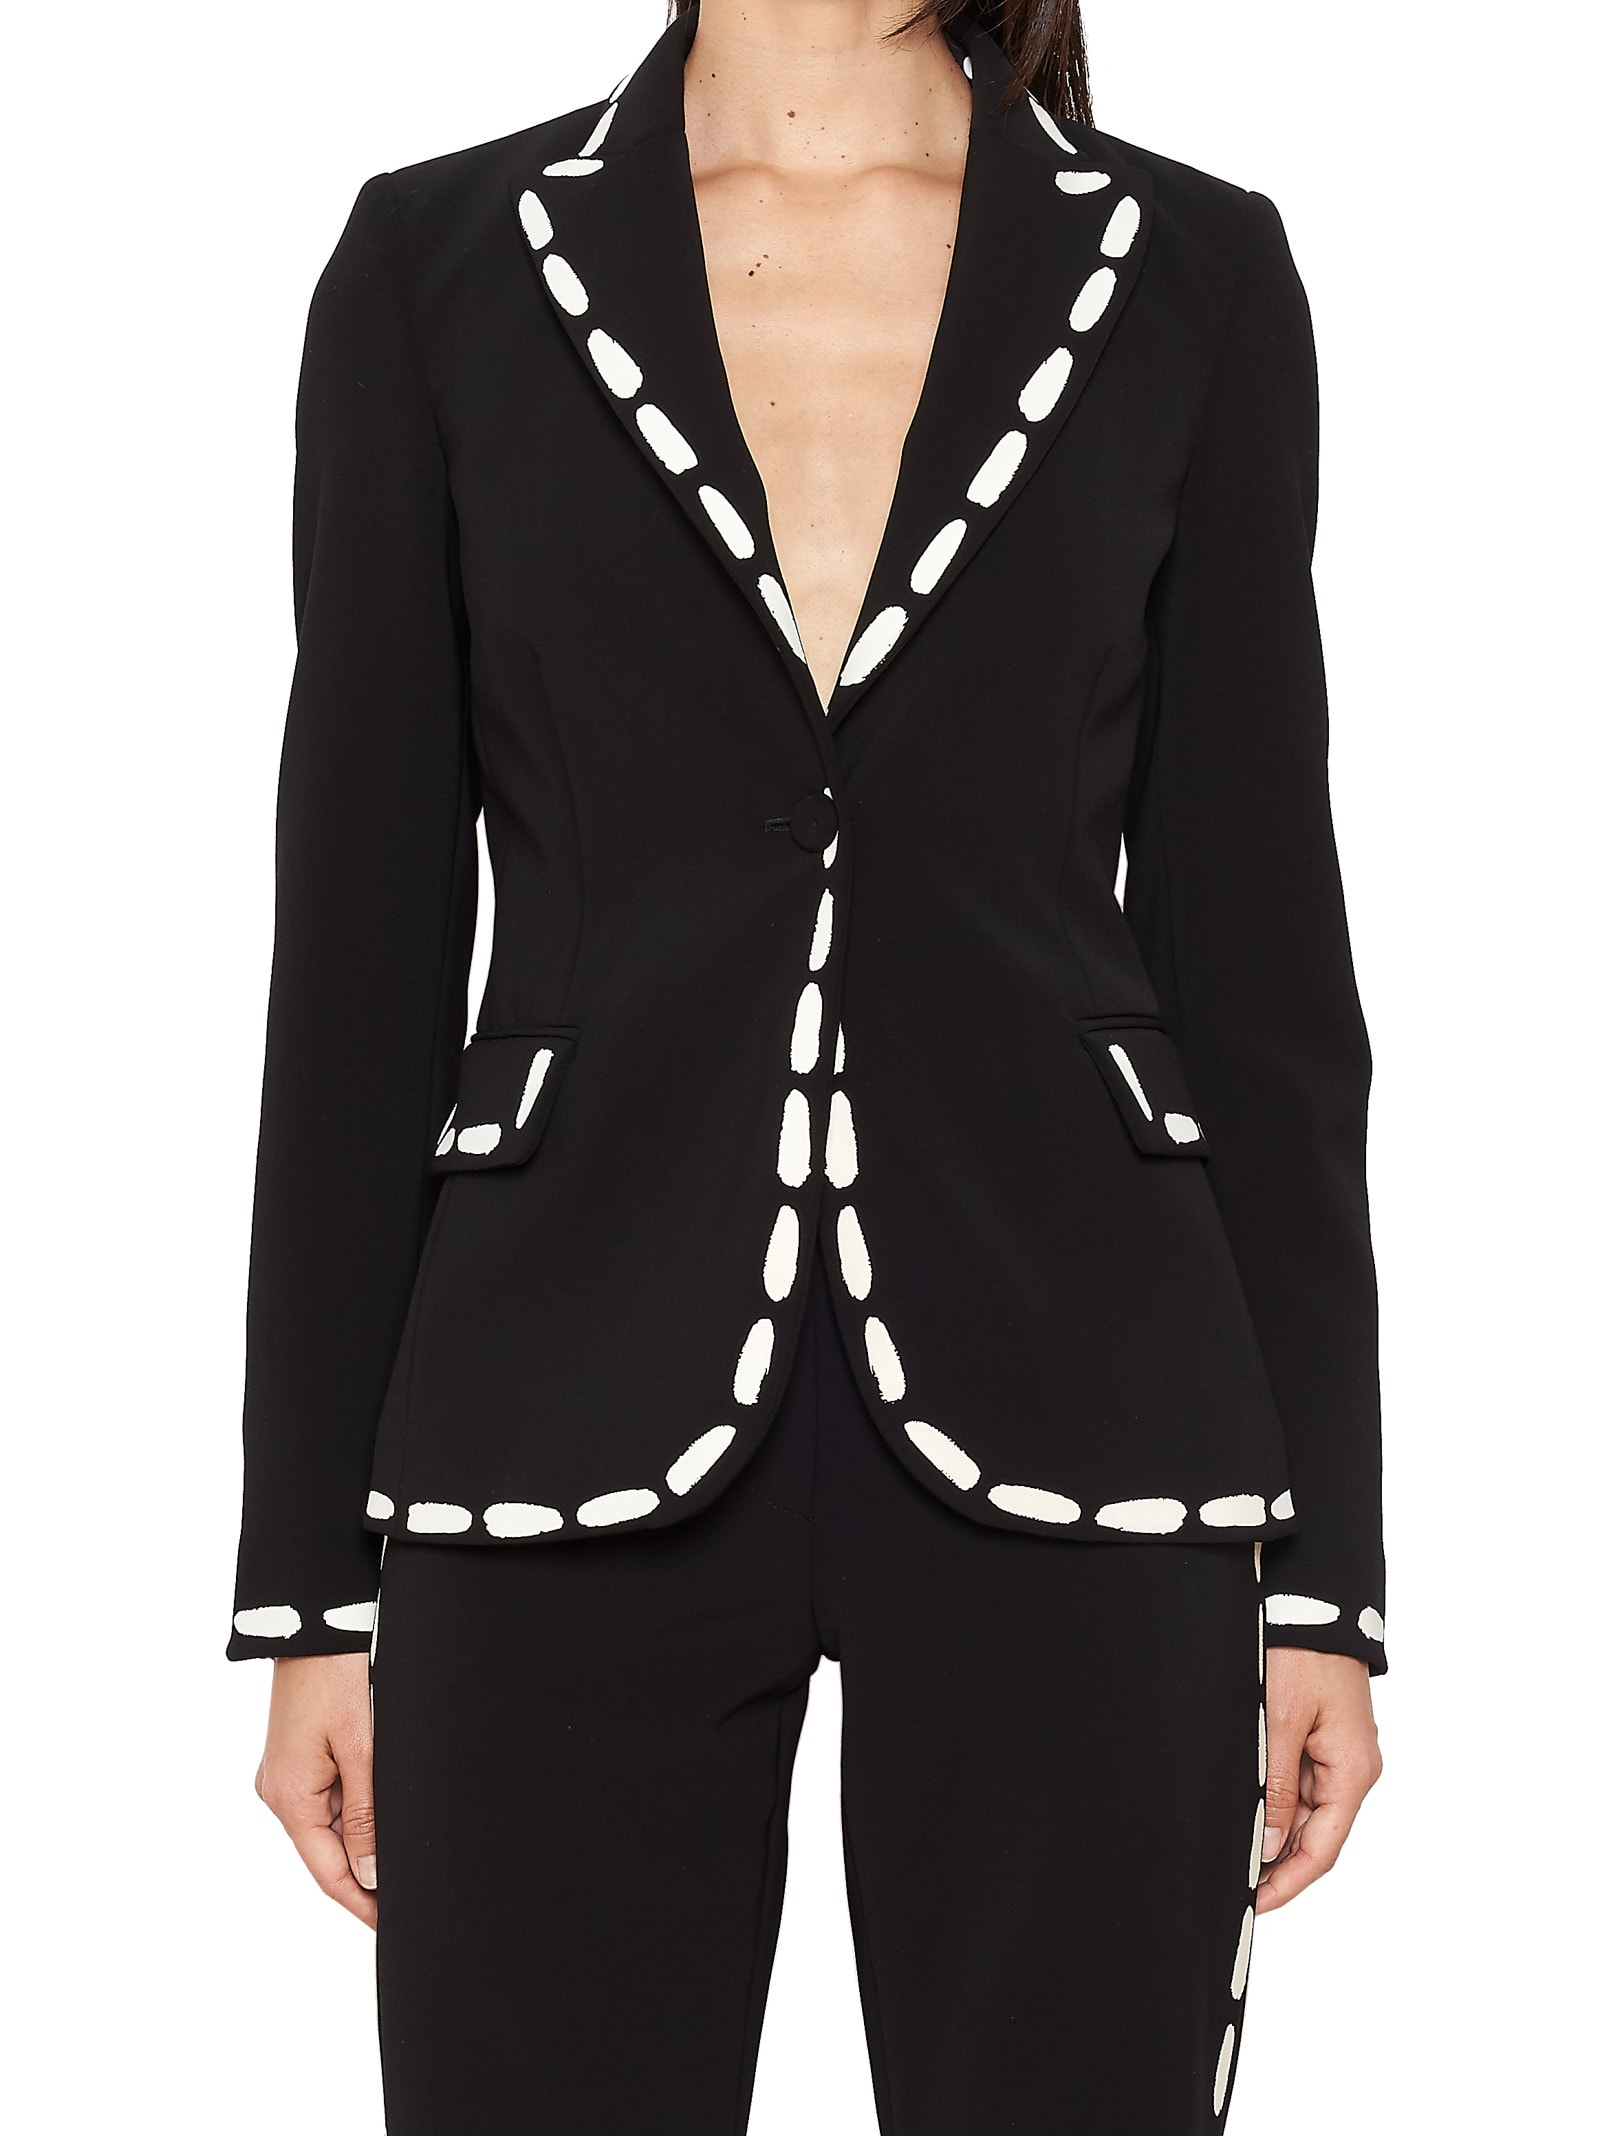 Moschino stitching Jacket